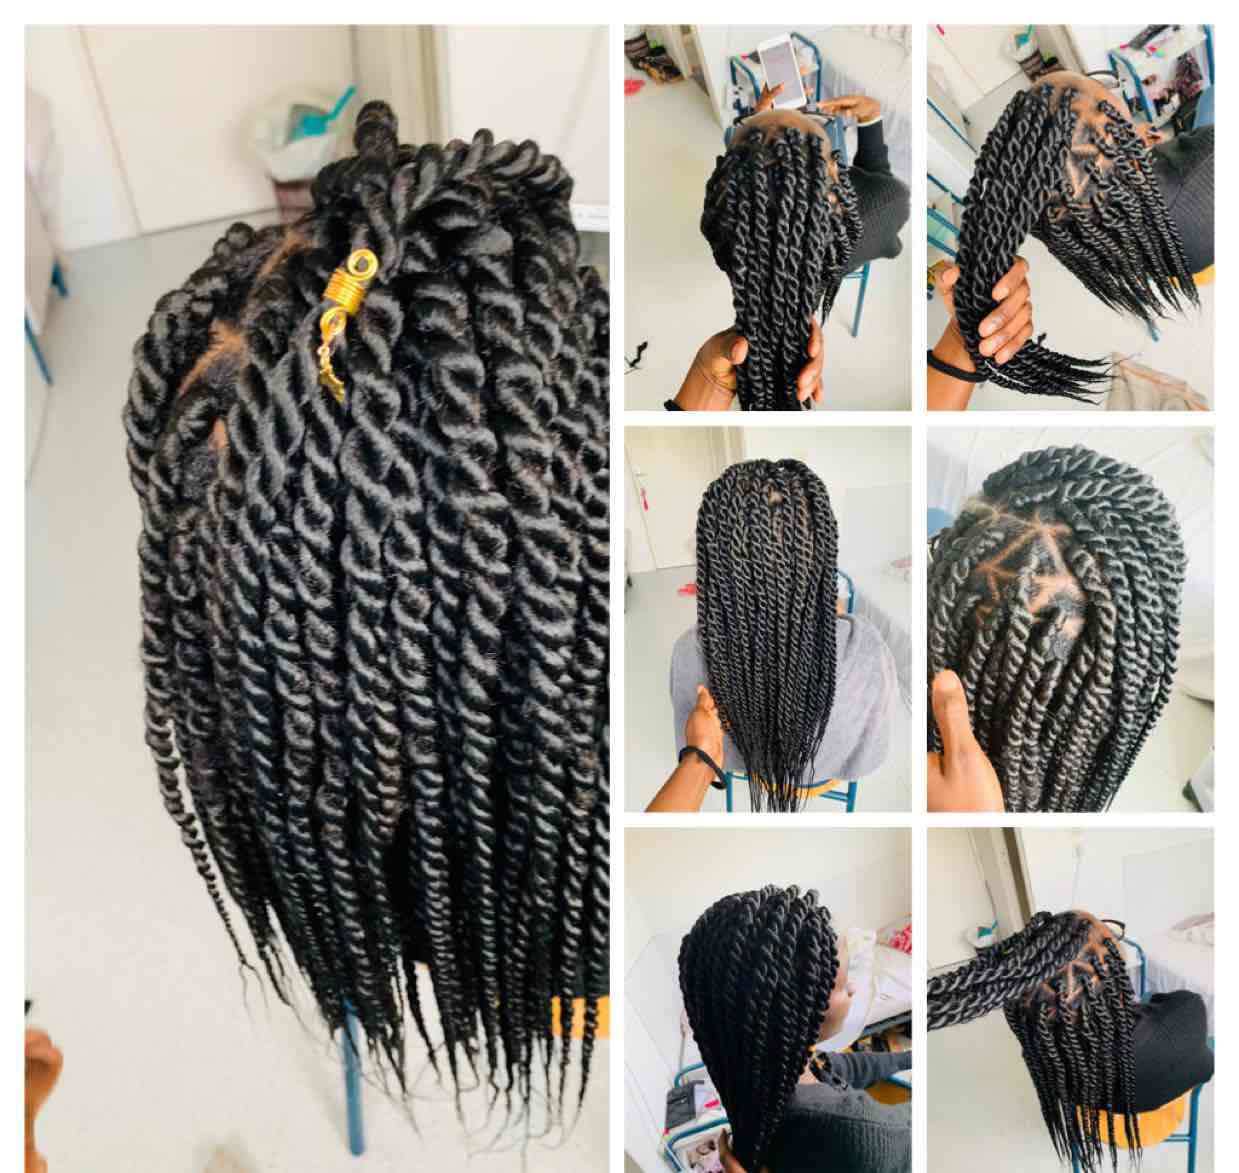 salon de coiffure afro tresse tresses box braids crochet braids vanilles tissages paris 75 77 78 91 92 93 94 95 QIYNYANH